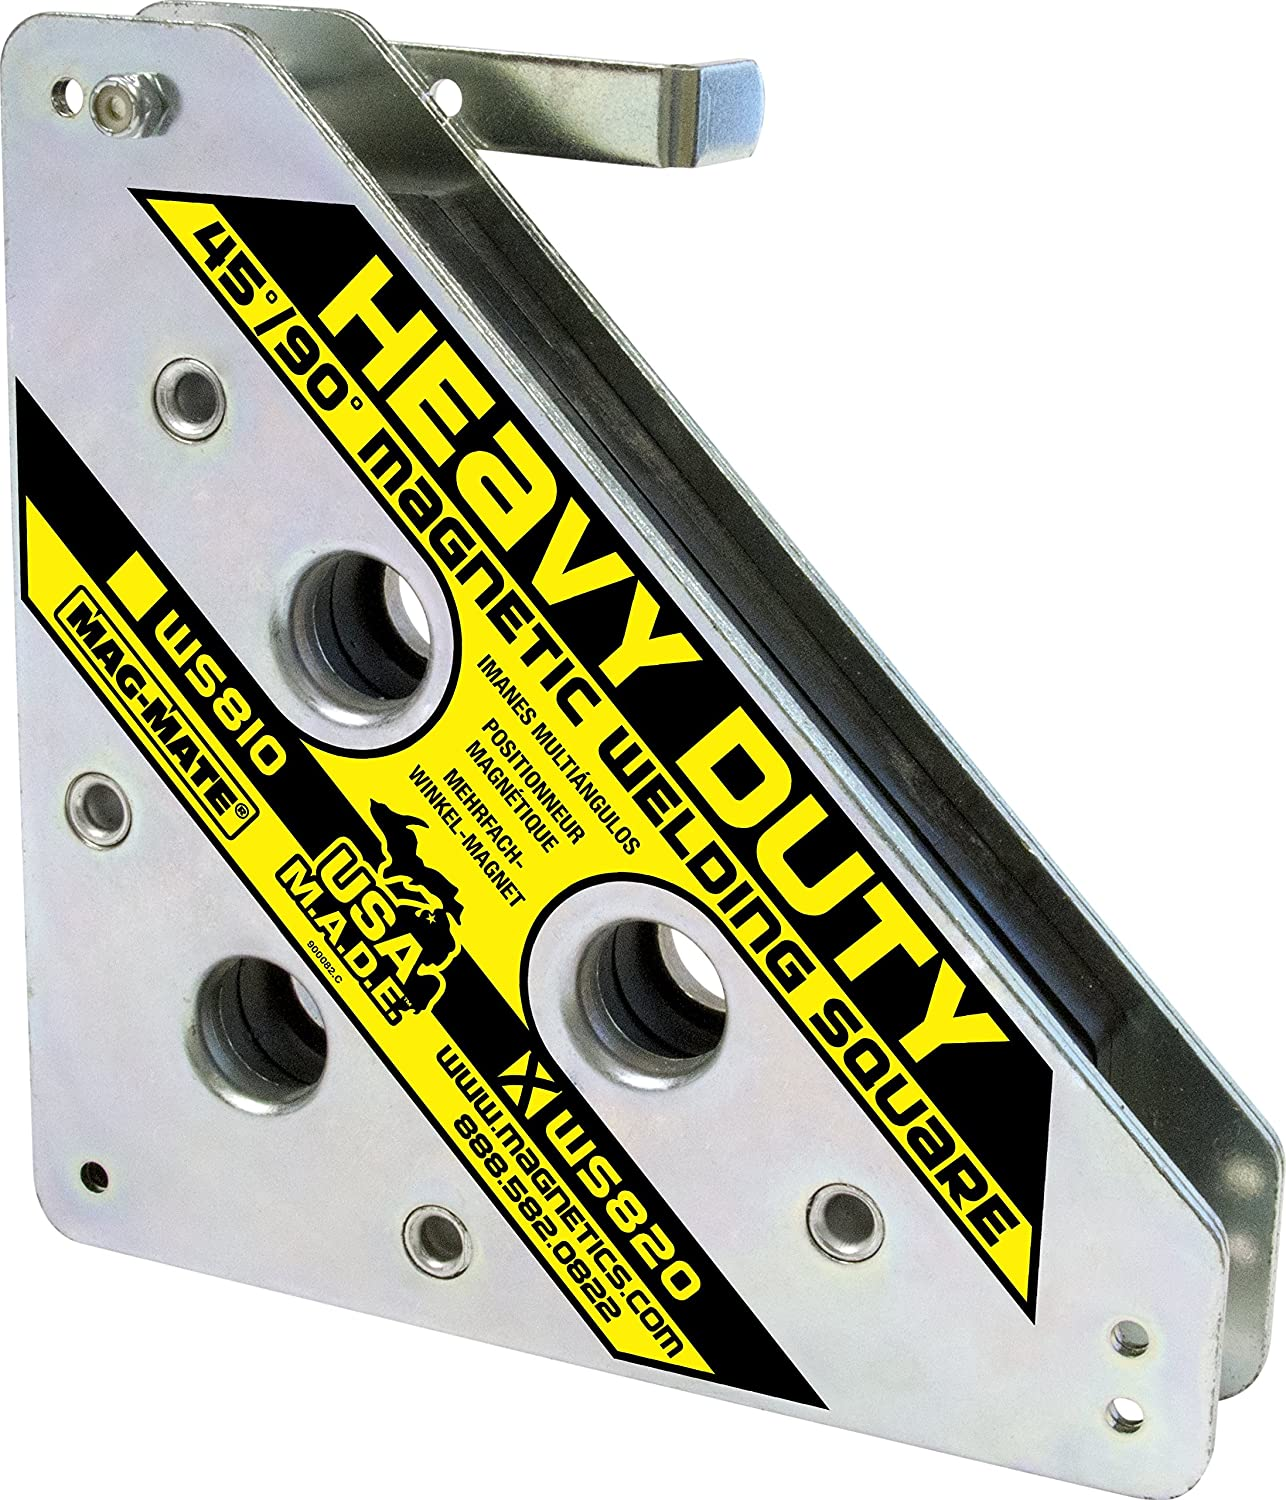 MAG-MATE WS820 Magnetic Welding Square with Release Handle and 325 lb Capacity